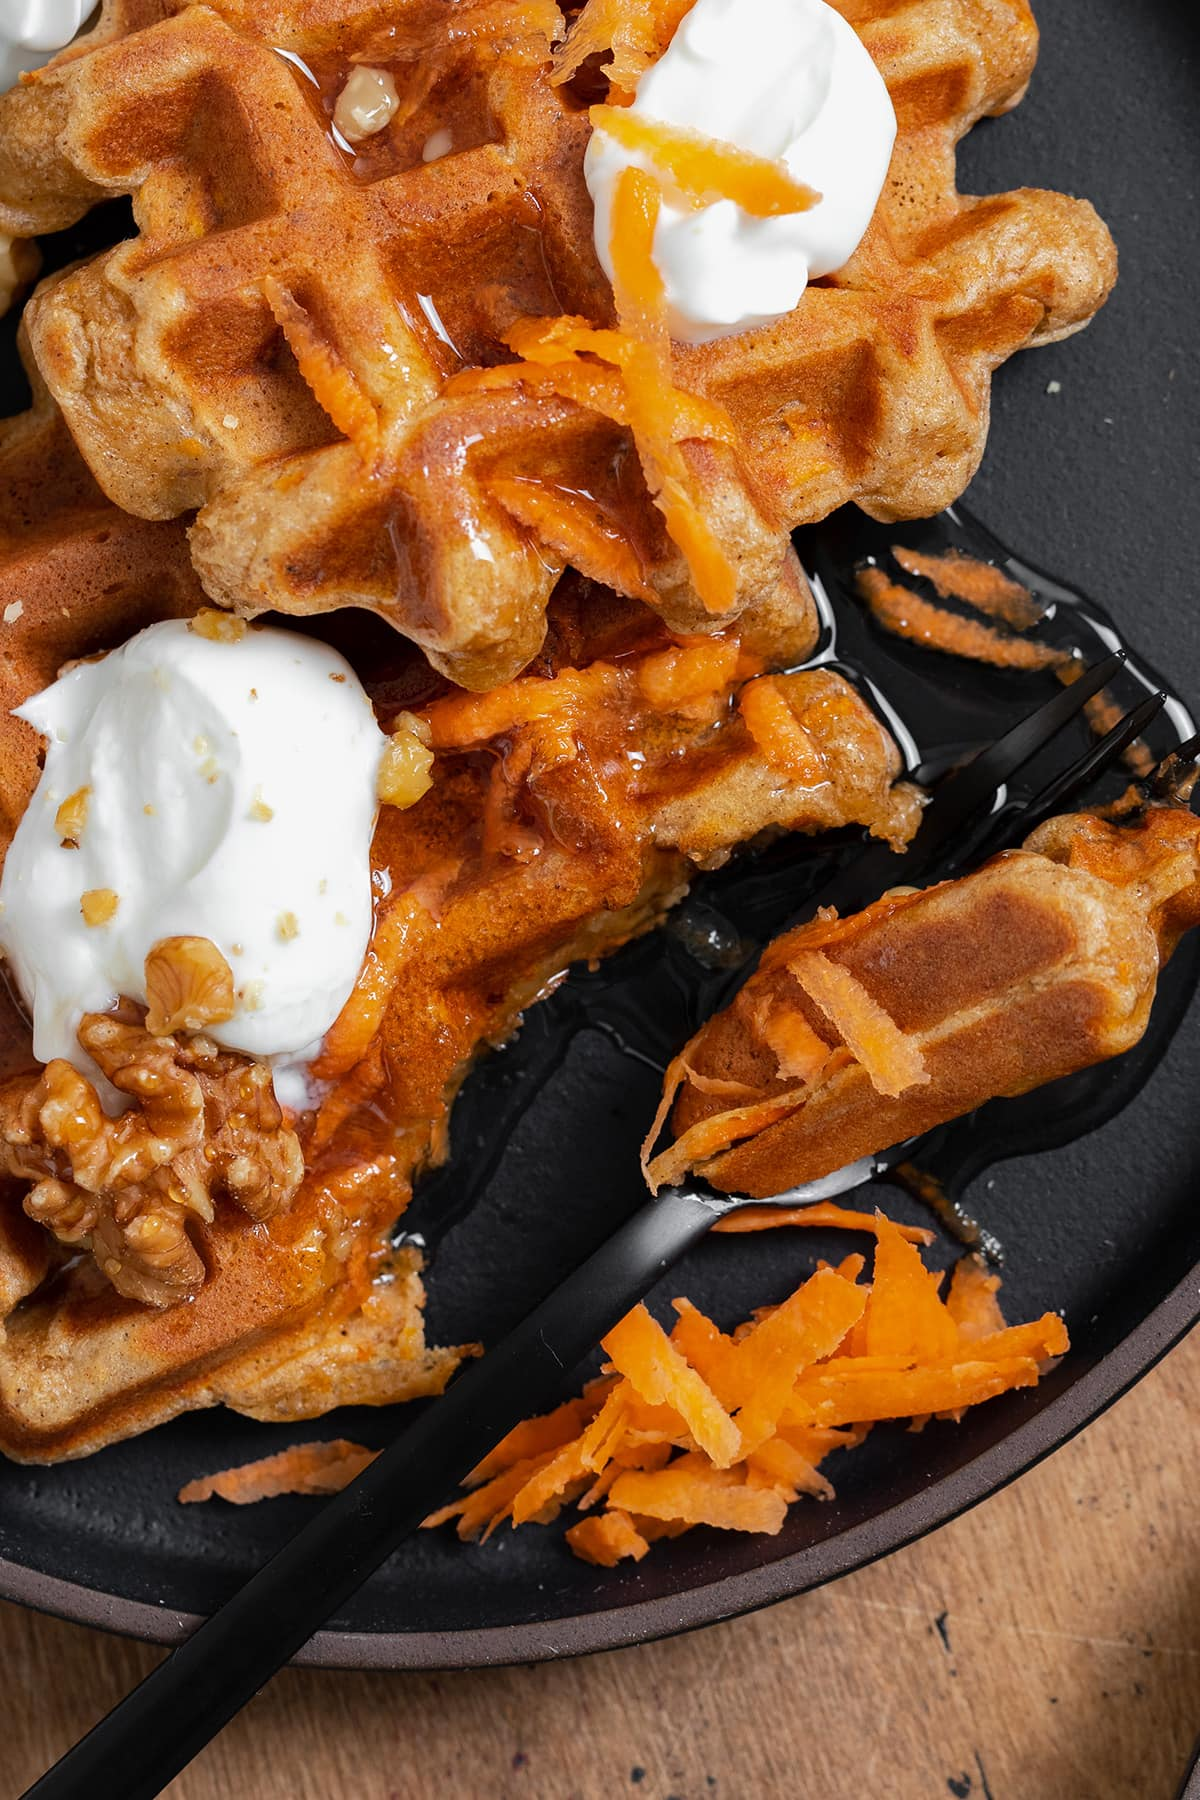 A close up photo of two carrot cake waffles shown on a black plate topped with greek yogurt, honey, grated carrots, and walnuts. A black fork cut a bite-sized piece from one waffle.